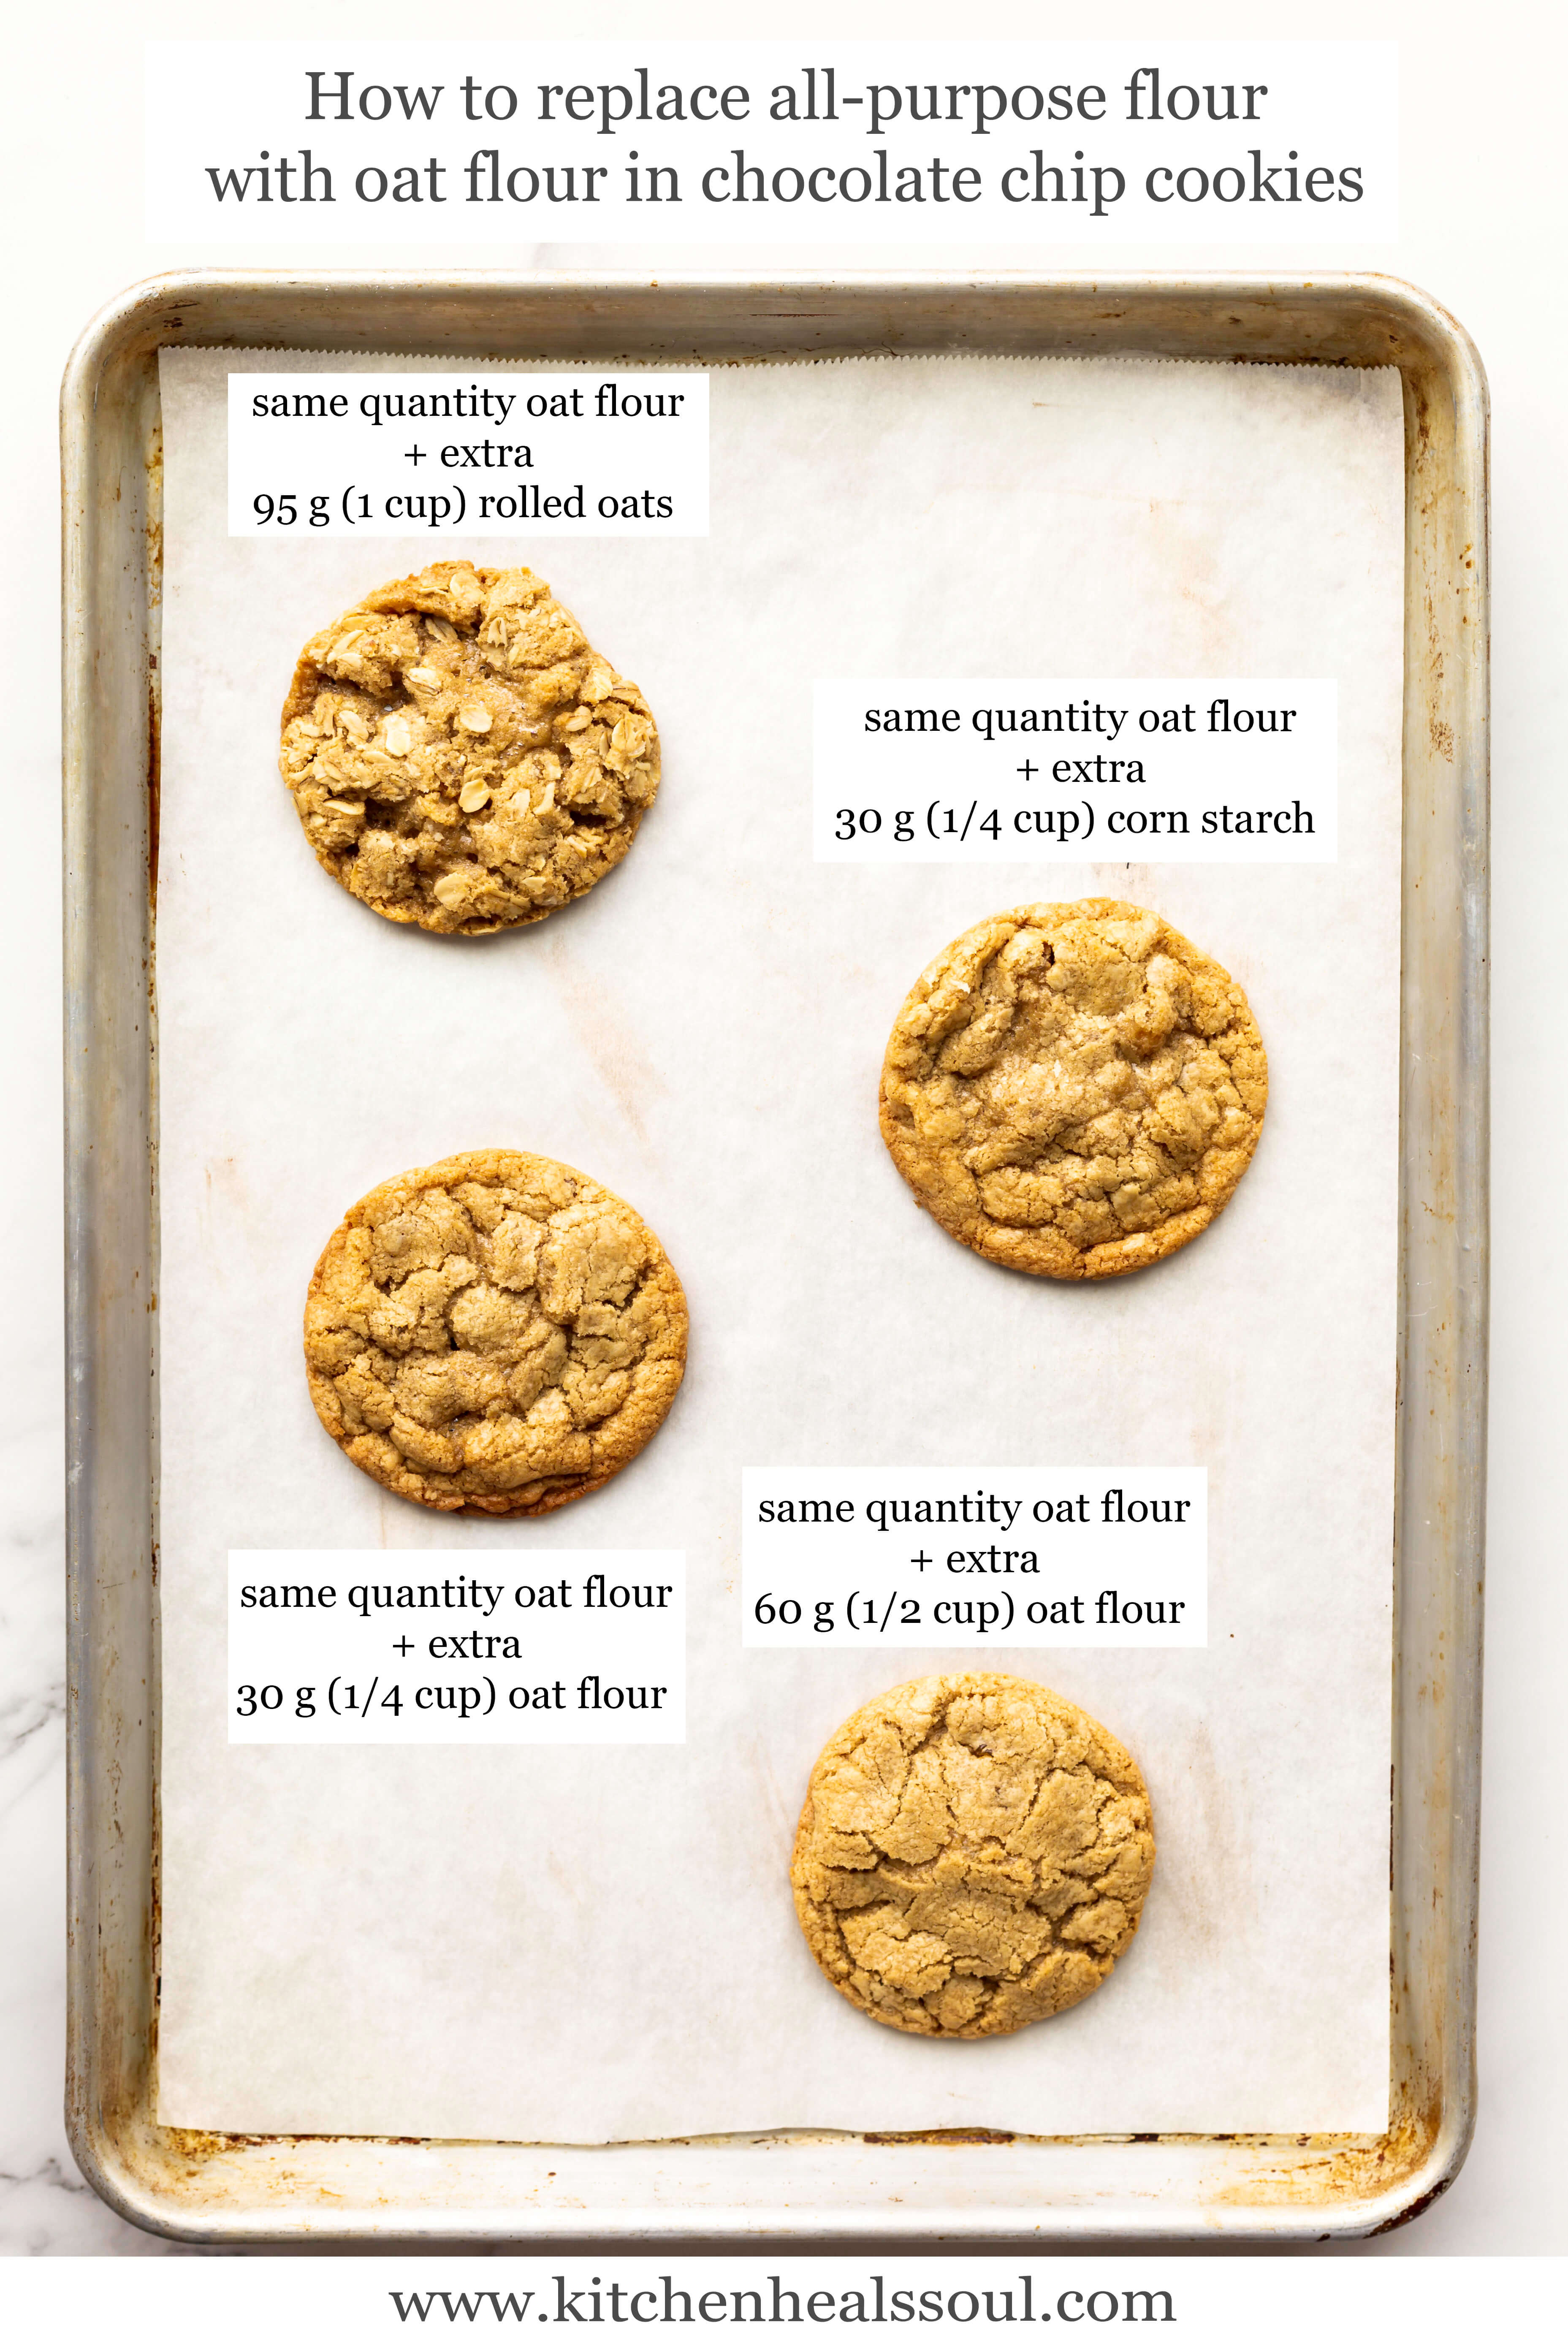 Image showing cookies baked with different amounts of oat flour to show how to achieve the same texture as classic chocolate chip cookies with a different flour